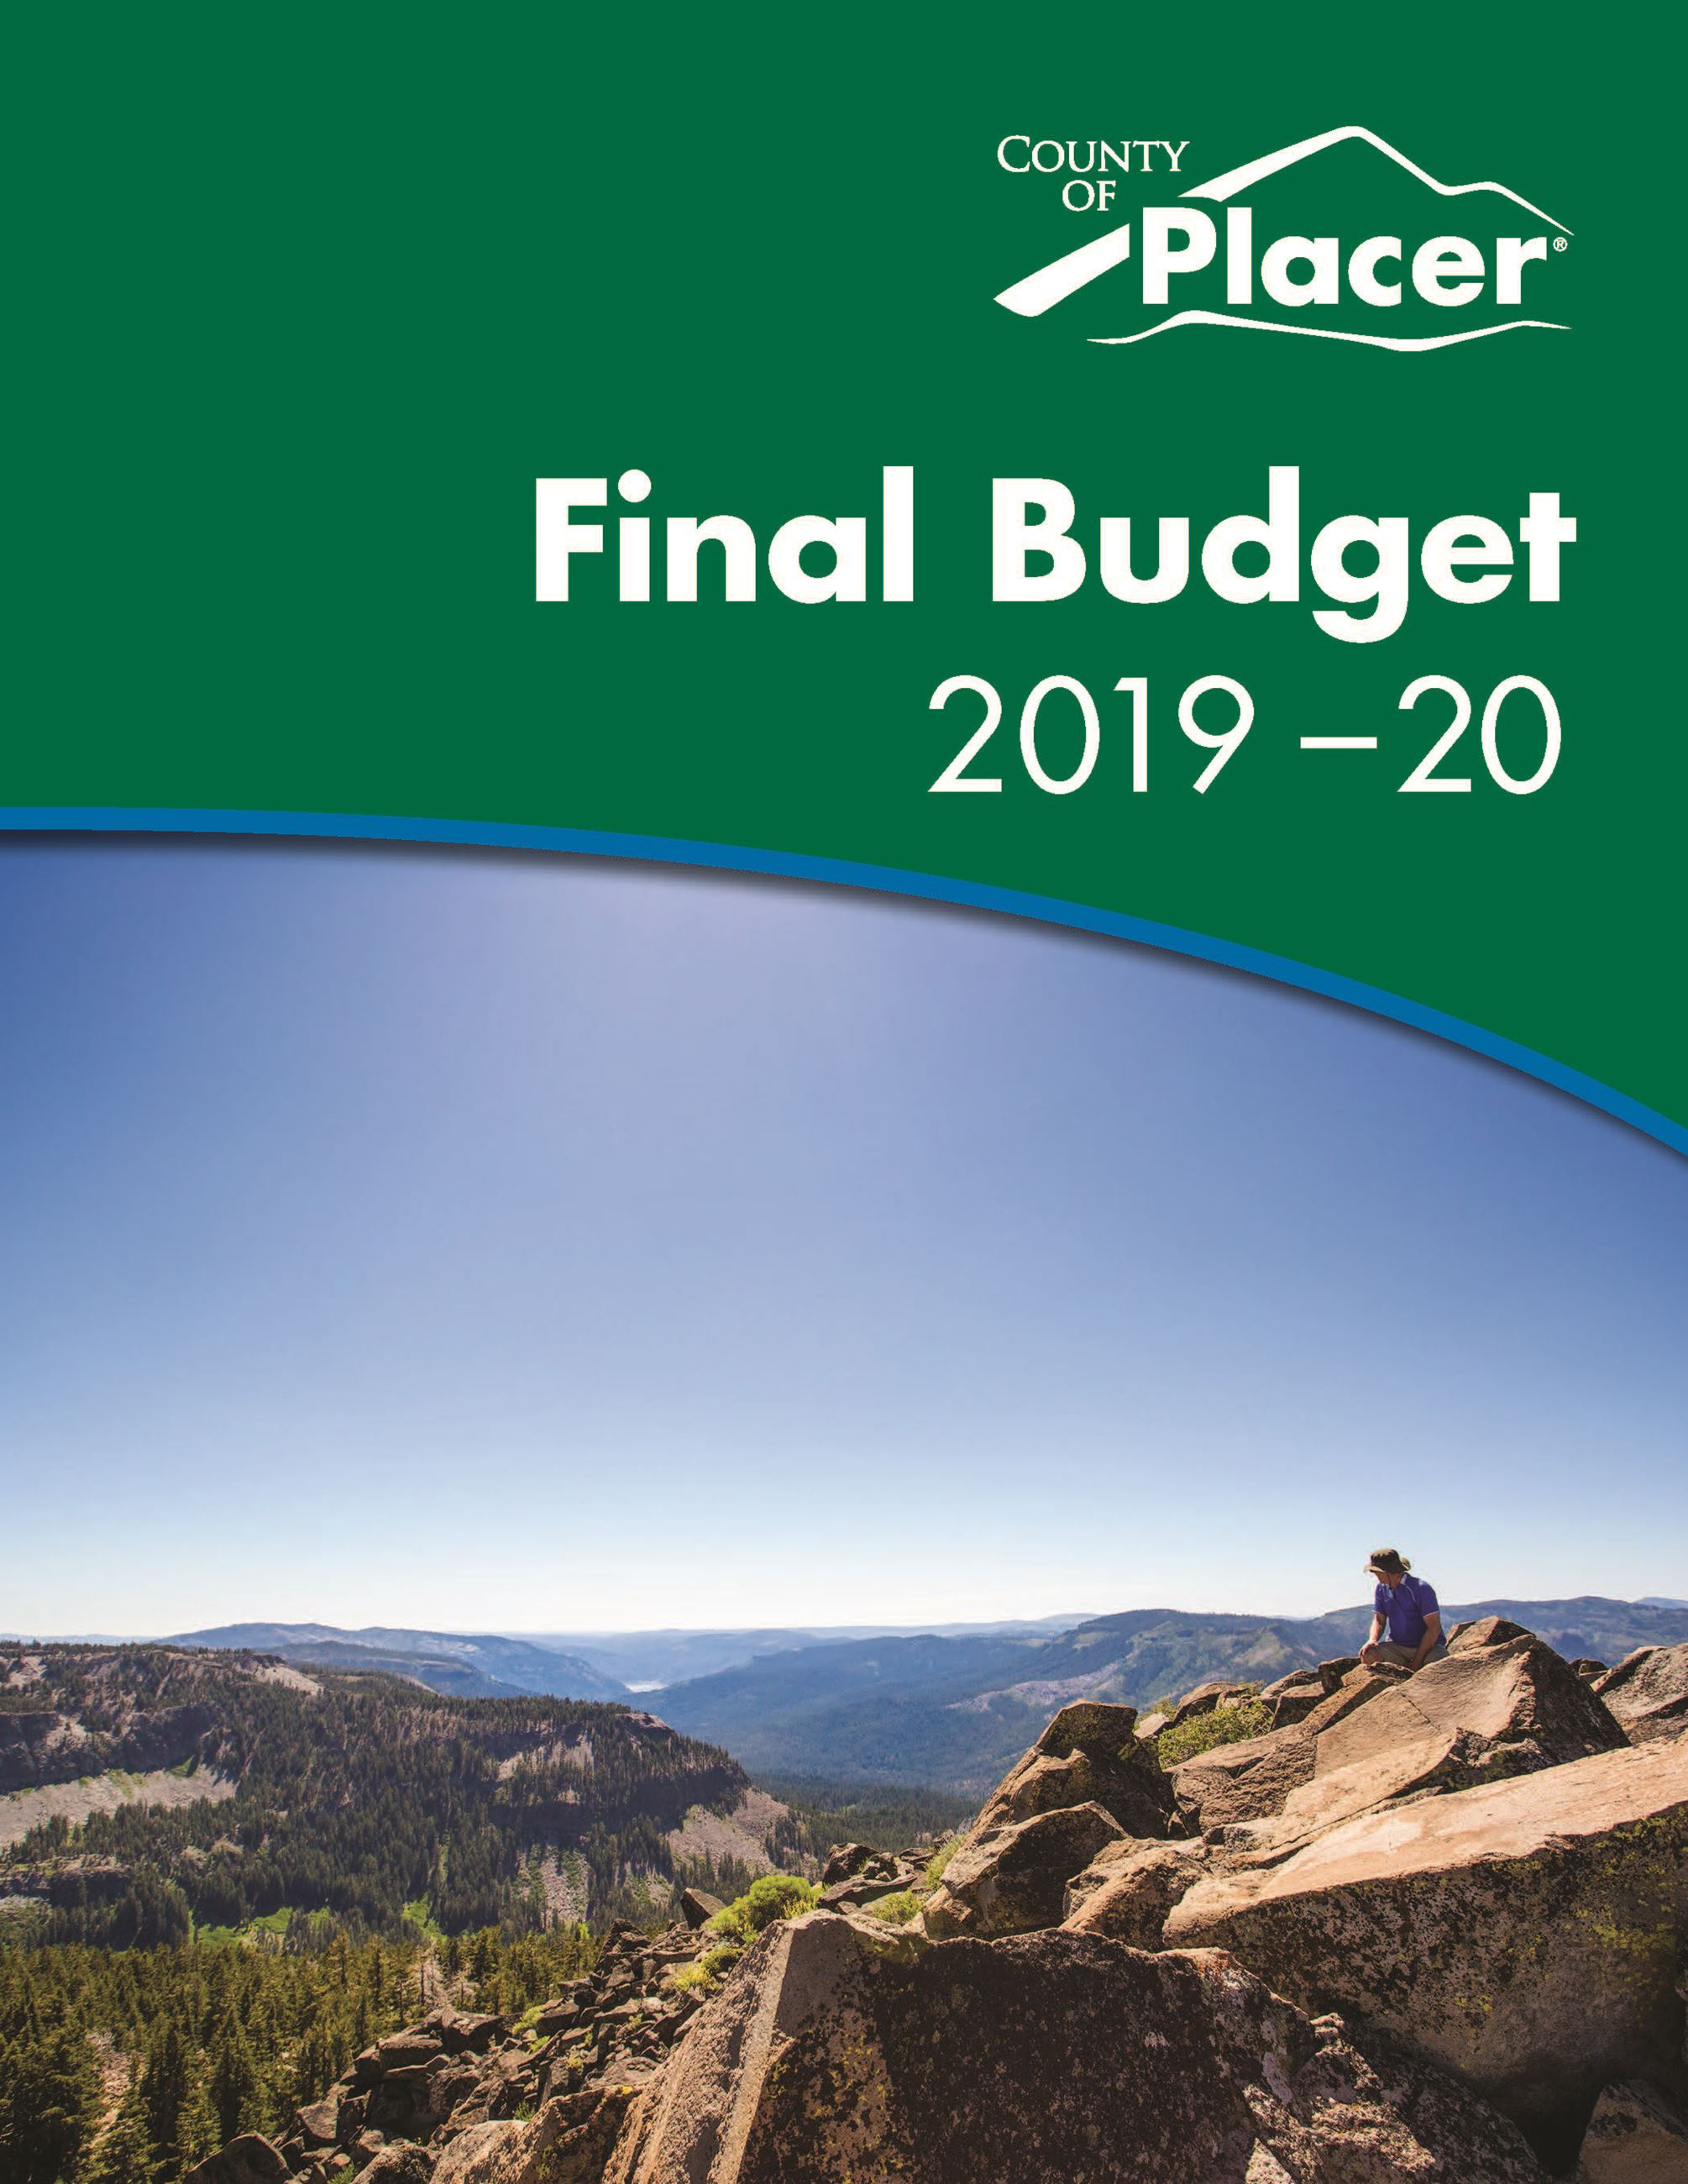 Cover image of County final budget book for fiscal year 2019-20 with an image of a man sitting atop